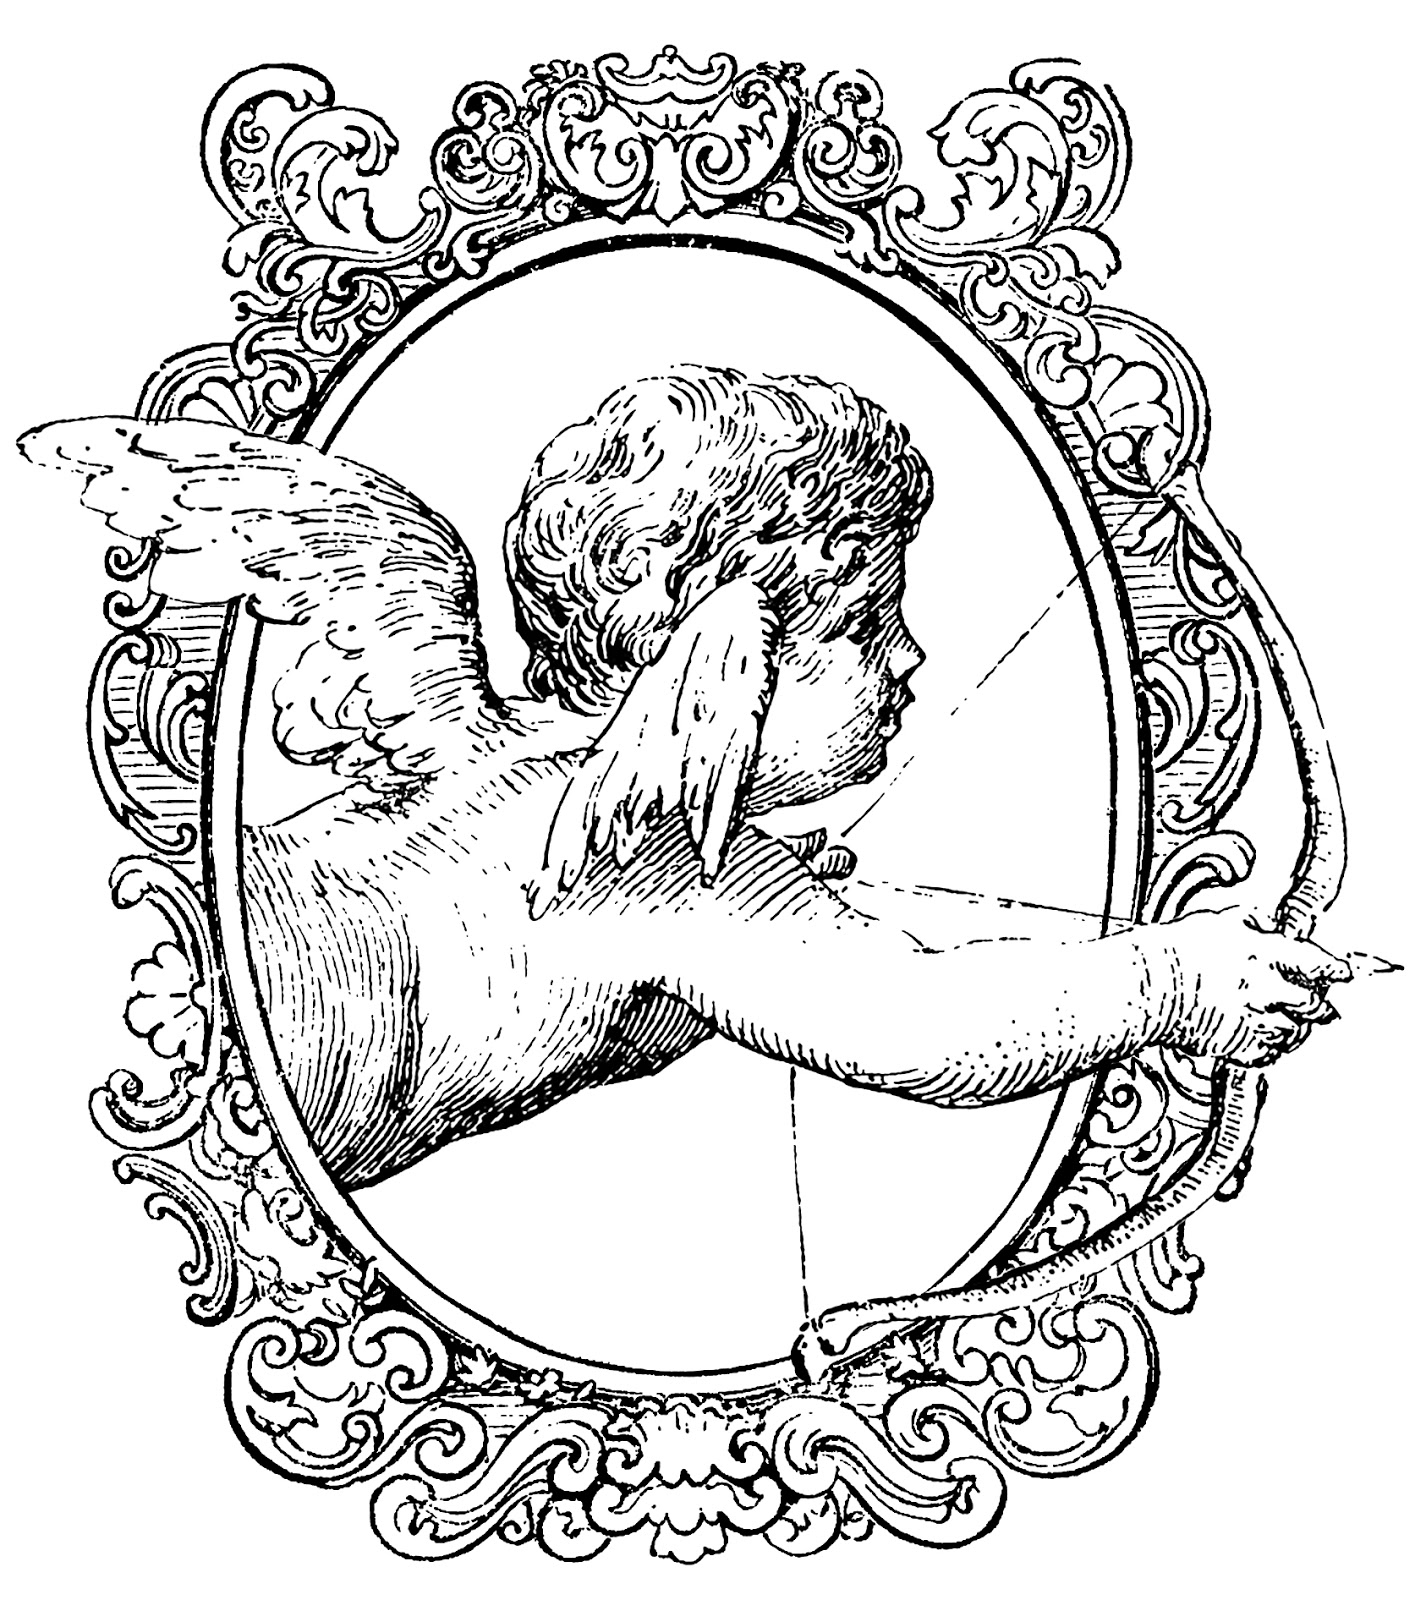 Cupid clipart antique Collage Cupid Vintage creations: collage